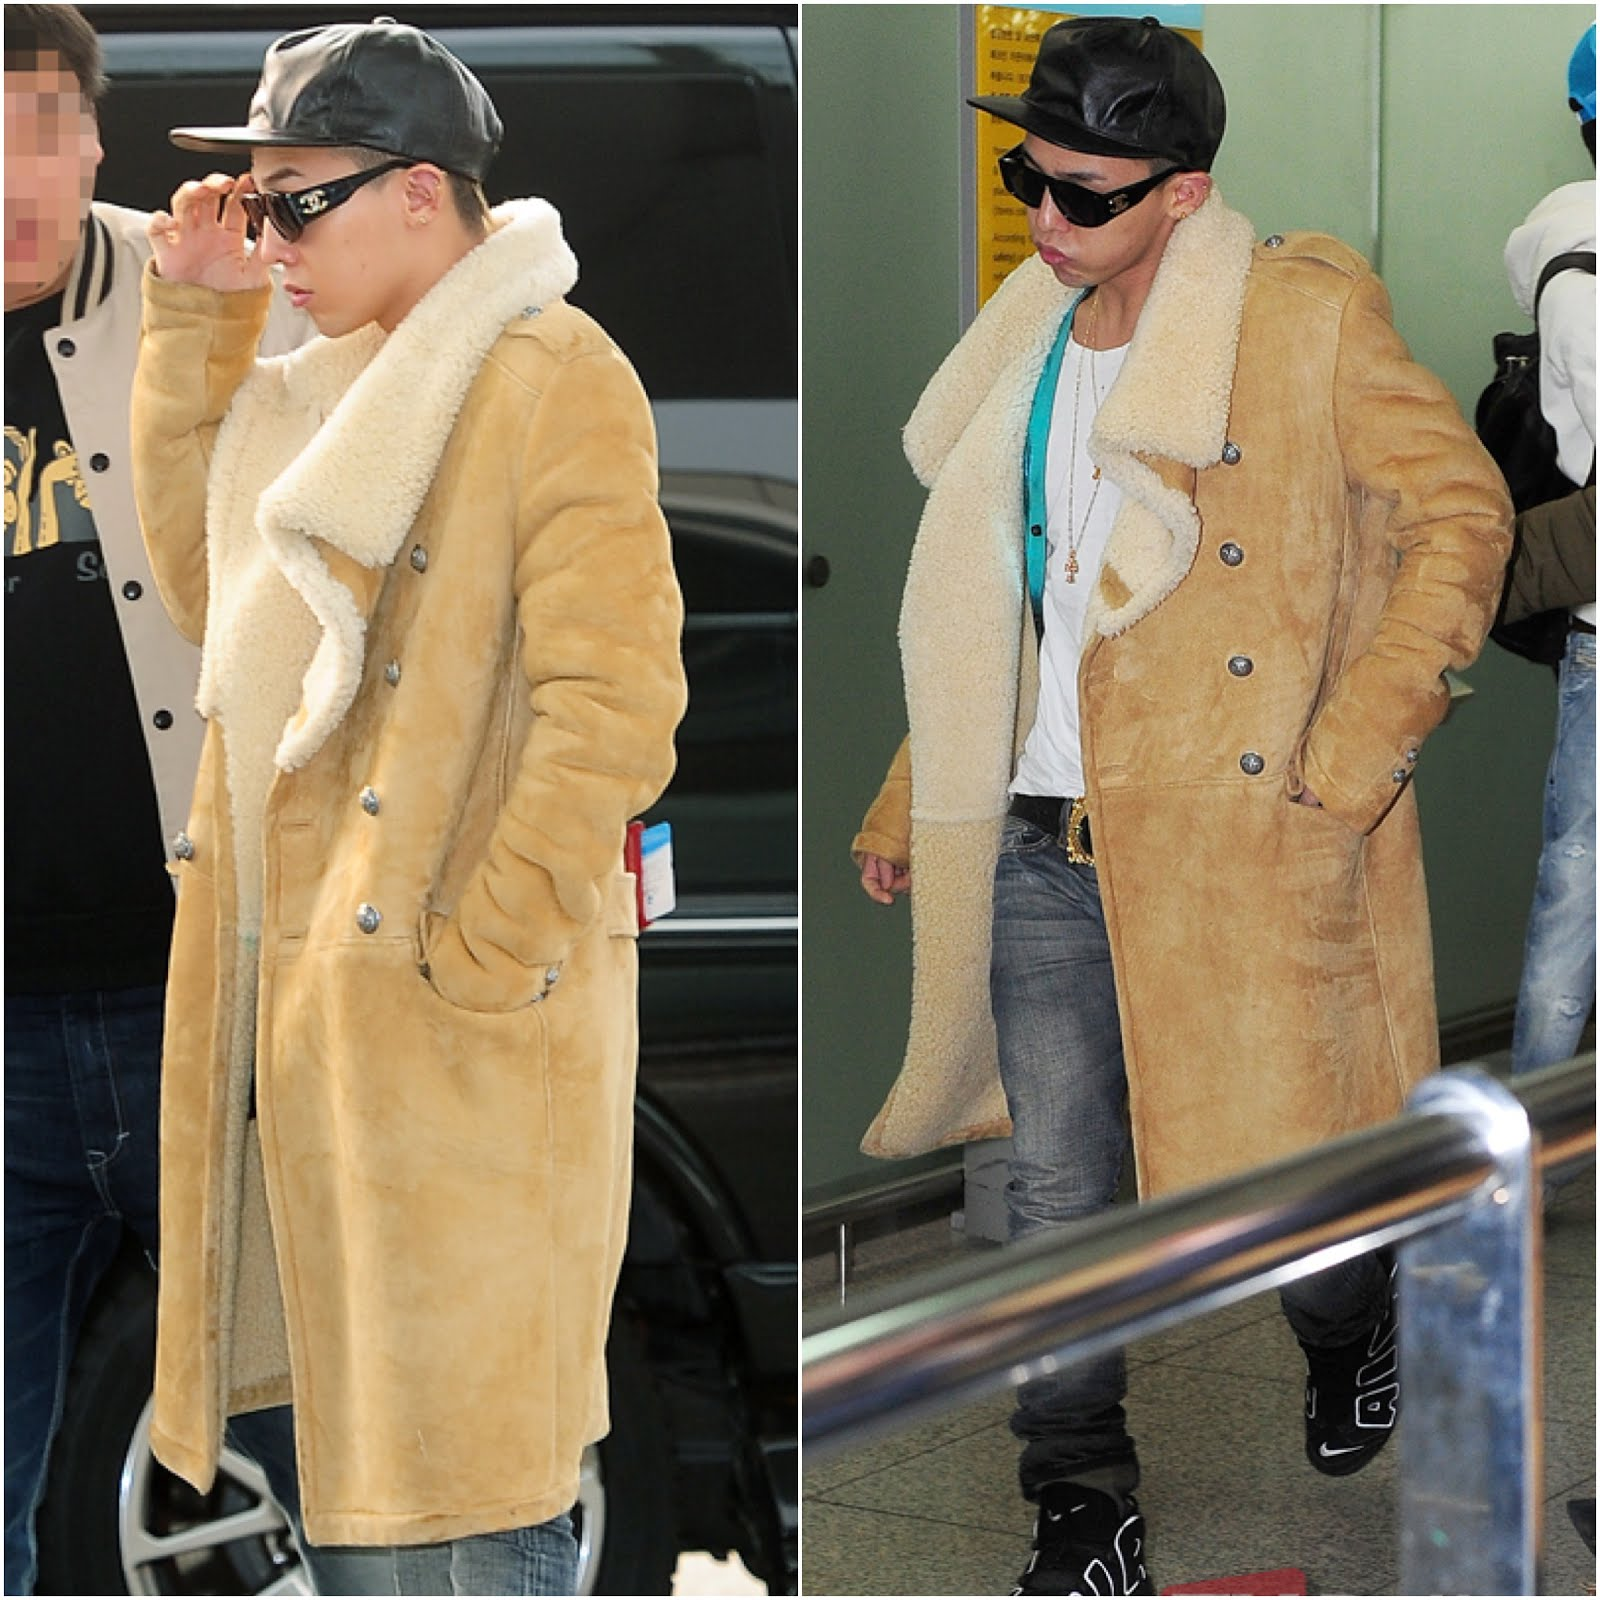 00O00 London Menswear Blog Celebrity Style G-Dragon [지드래곤] from BigBang in Balmain - Incheon Airport